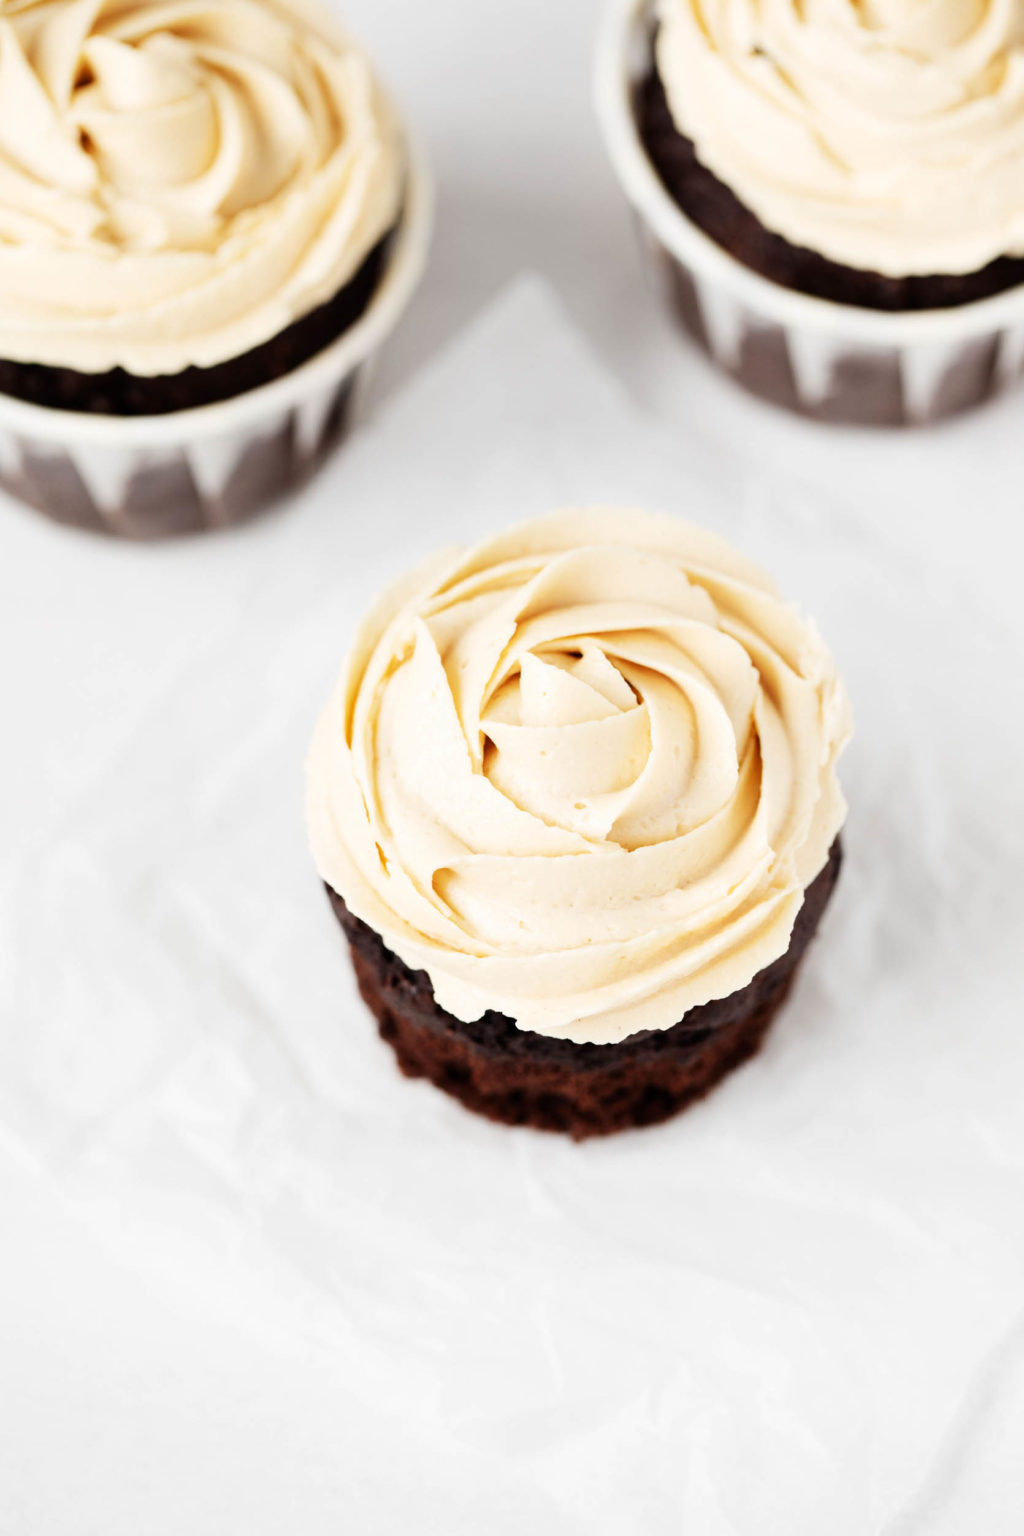 Three cupcakes with a dark base and a light, whipped frosting are positioned on a parchment paper surface.